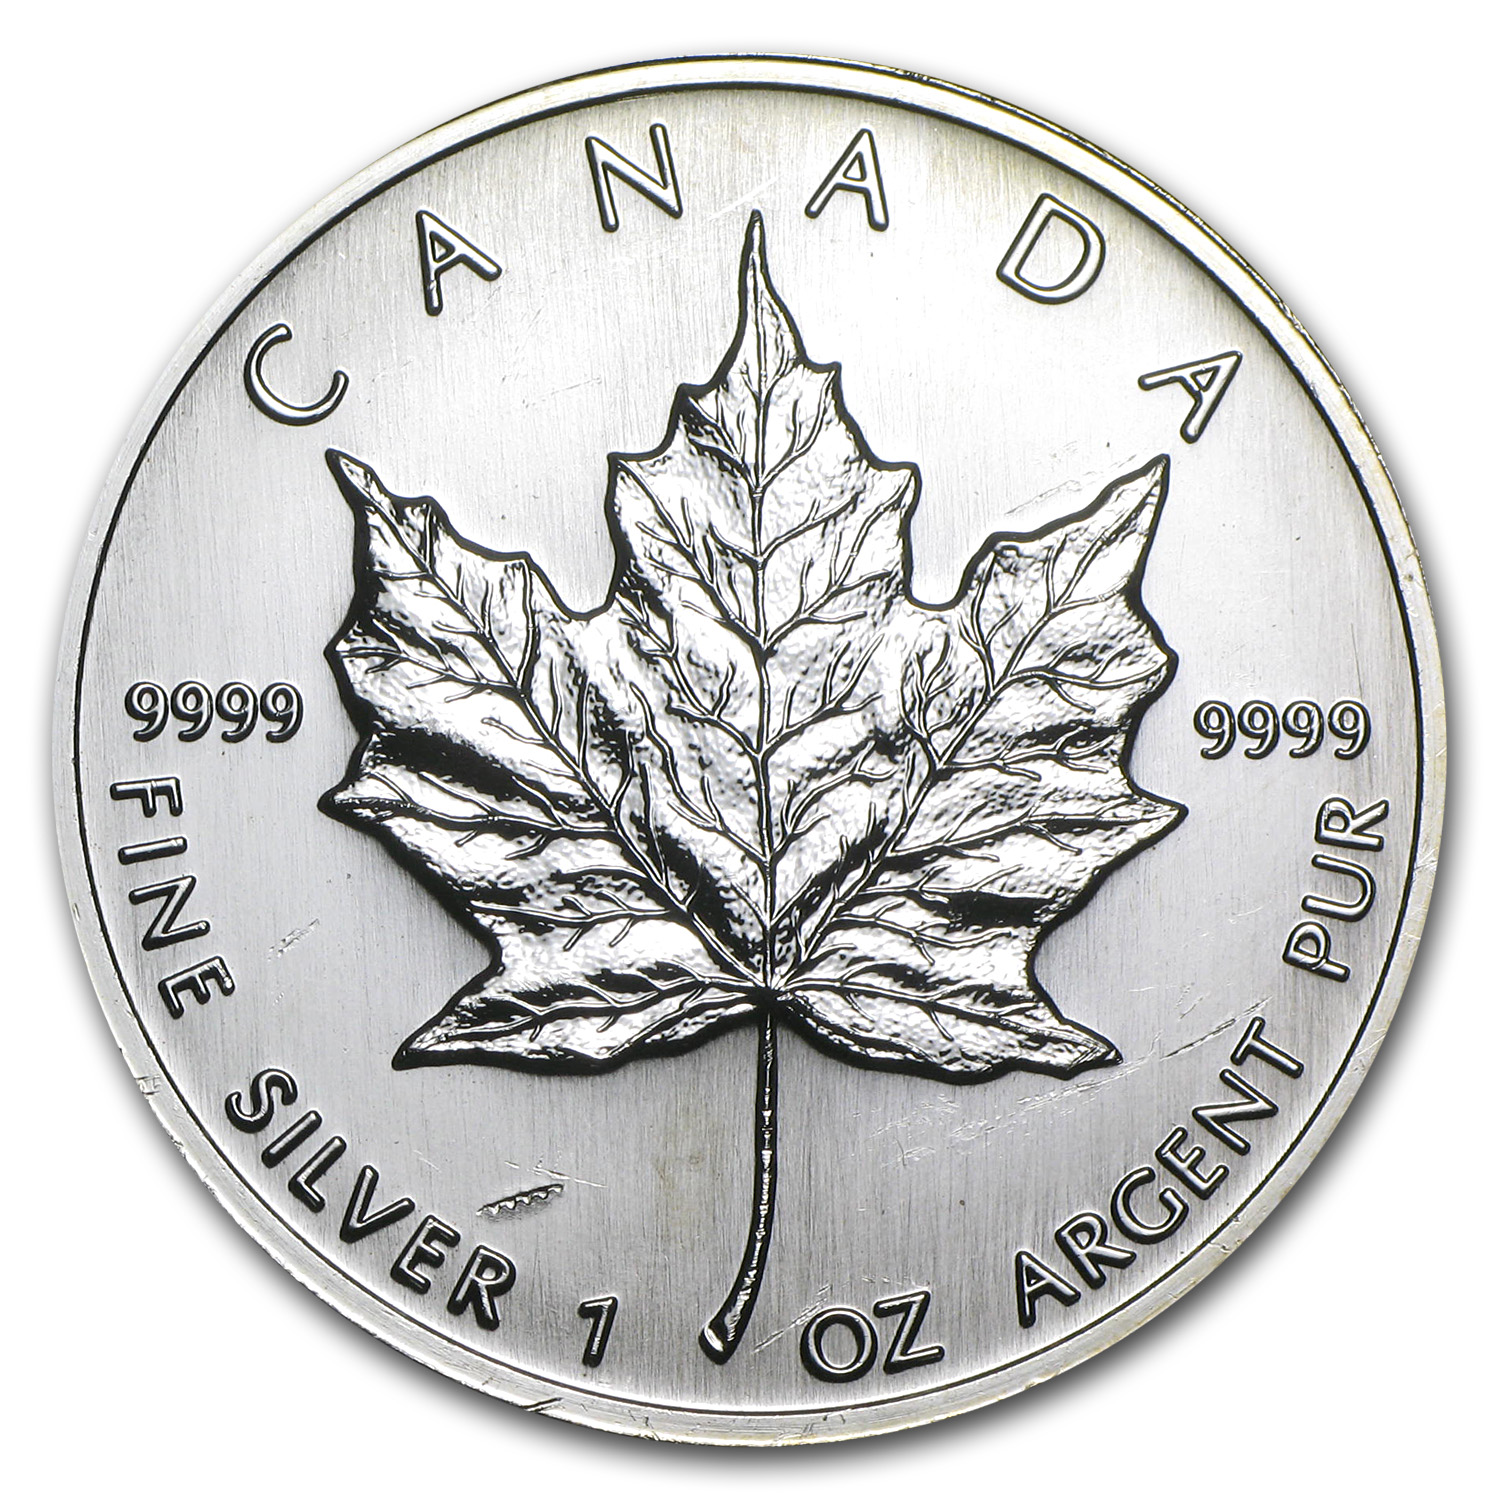 1997 Canada 1 oz Silver Maple Leaf (Light Abrasions)